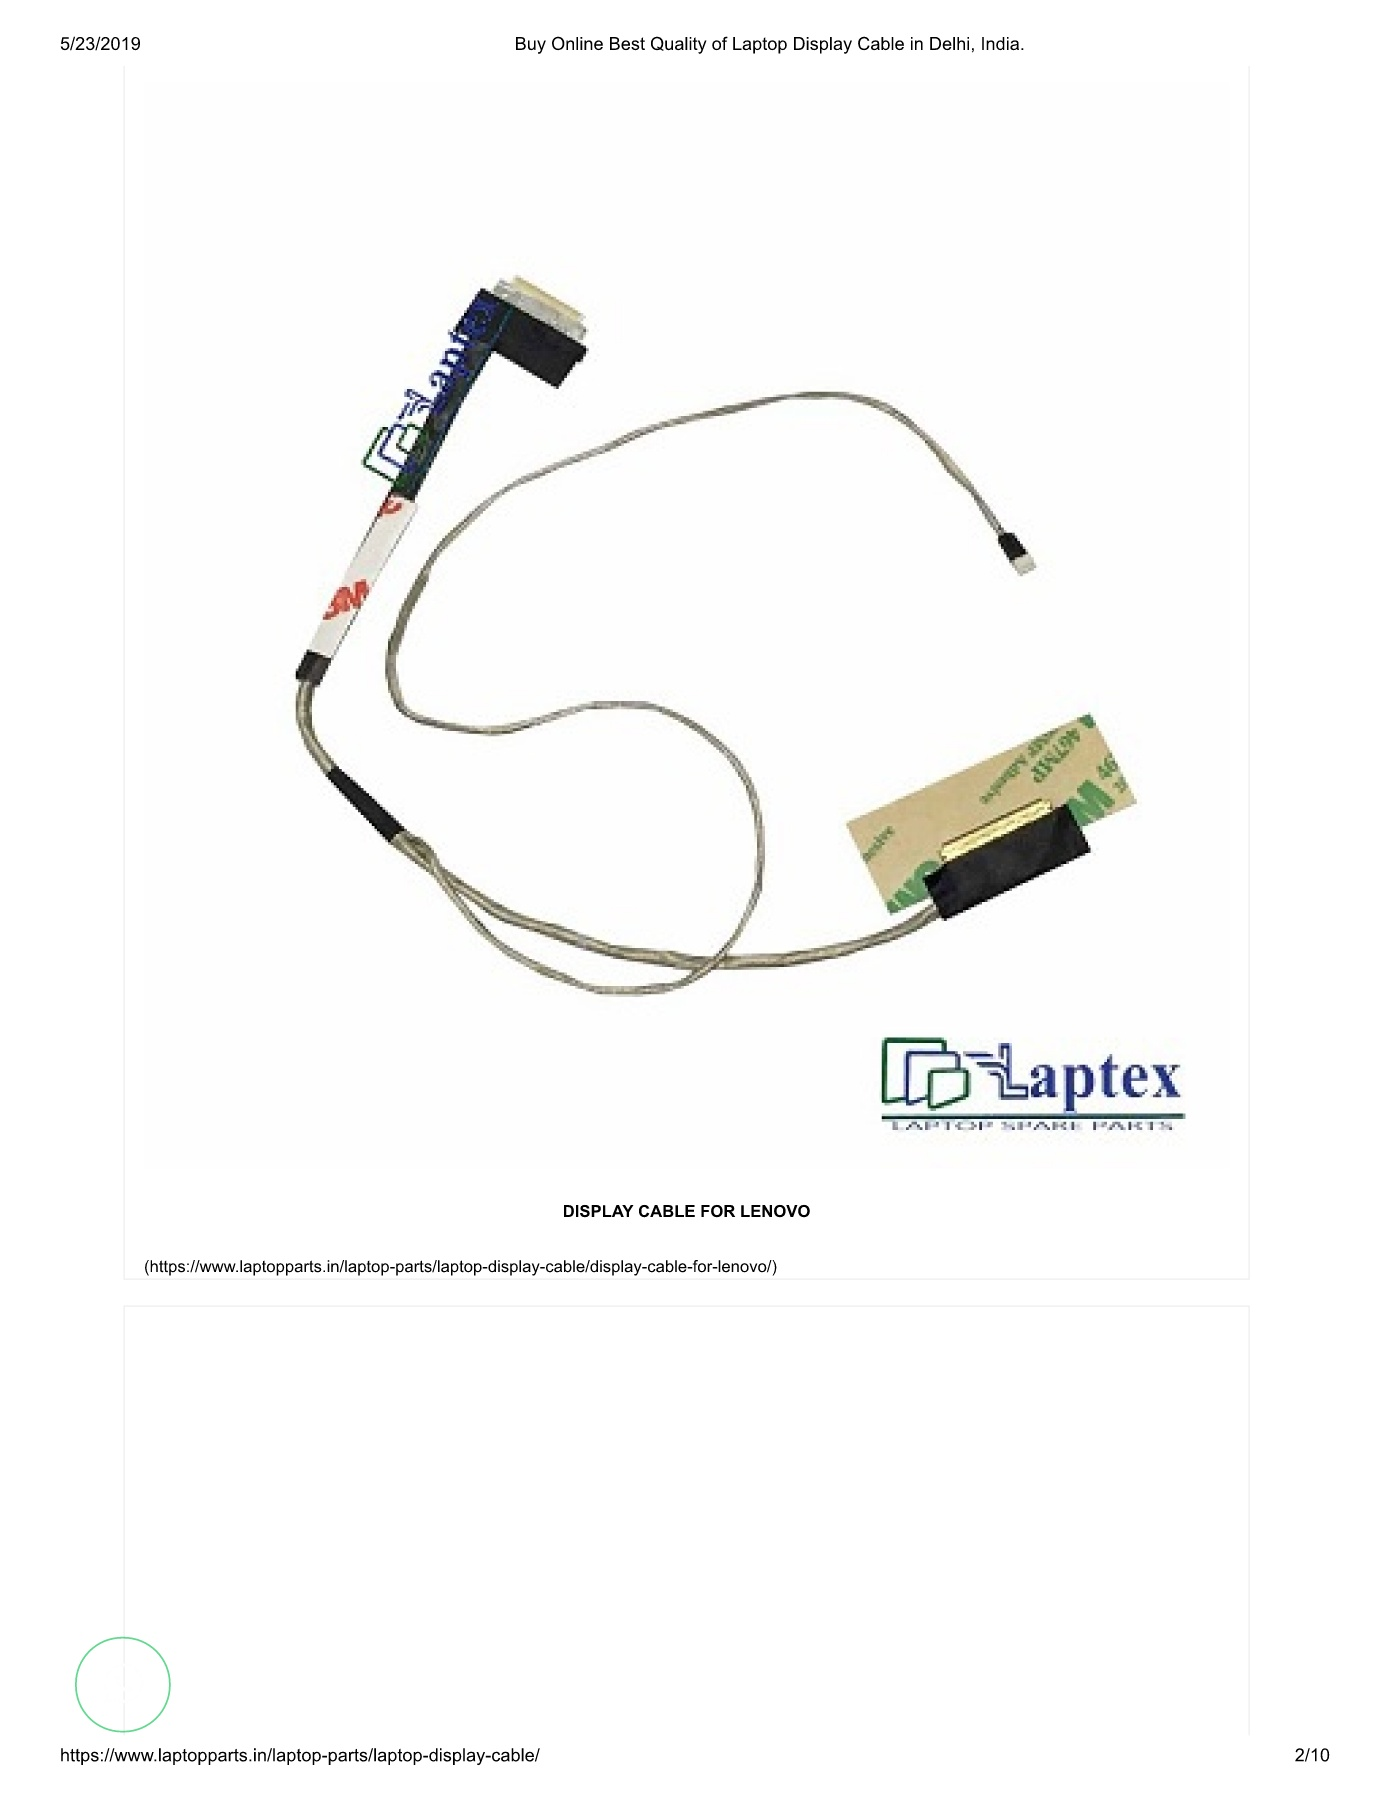 Buy Online Best Quality of Laptop Display Cable in Delhi, India_